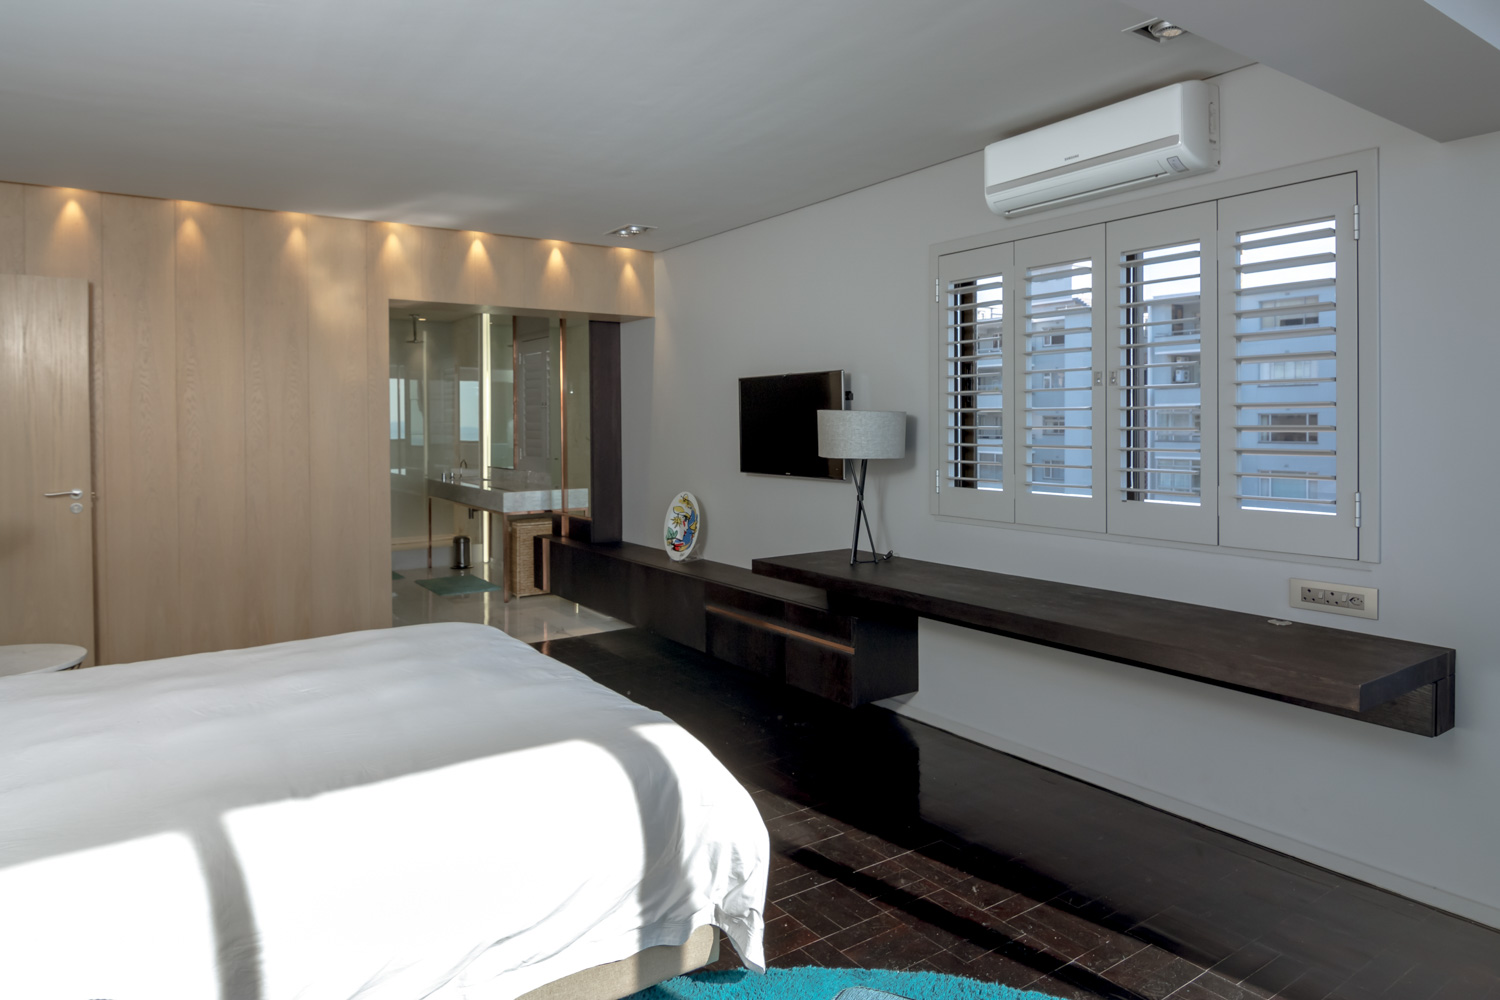 Sea Point Apartment Architecture & Interior Design by Jenny Mills Architects - Master Bedroom View 3